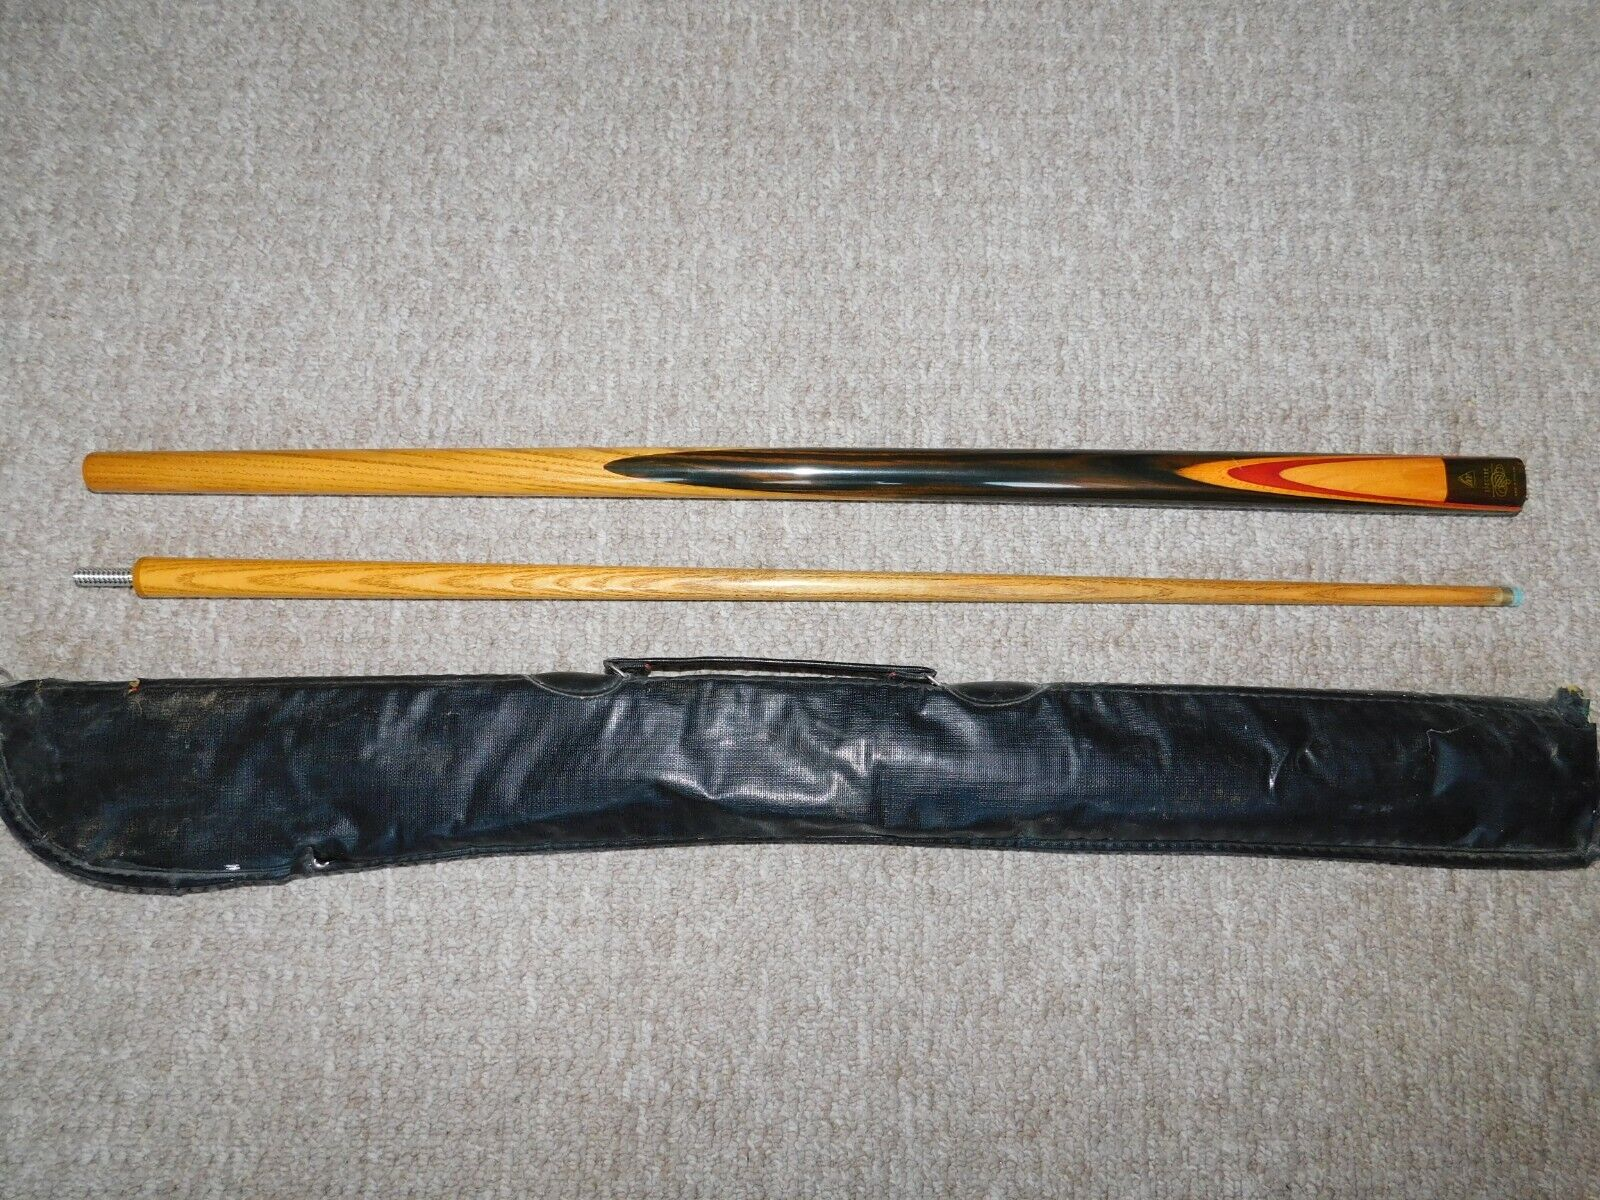 BCE Spectre 2 piece Snooker/Pool Cue, in a case, used.